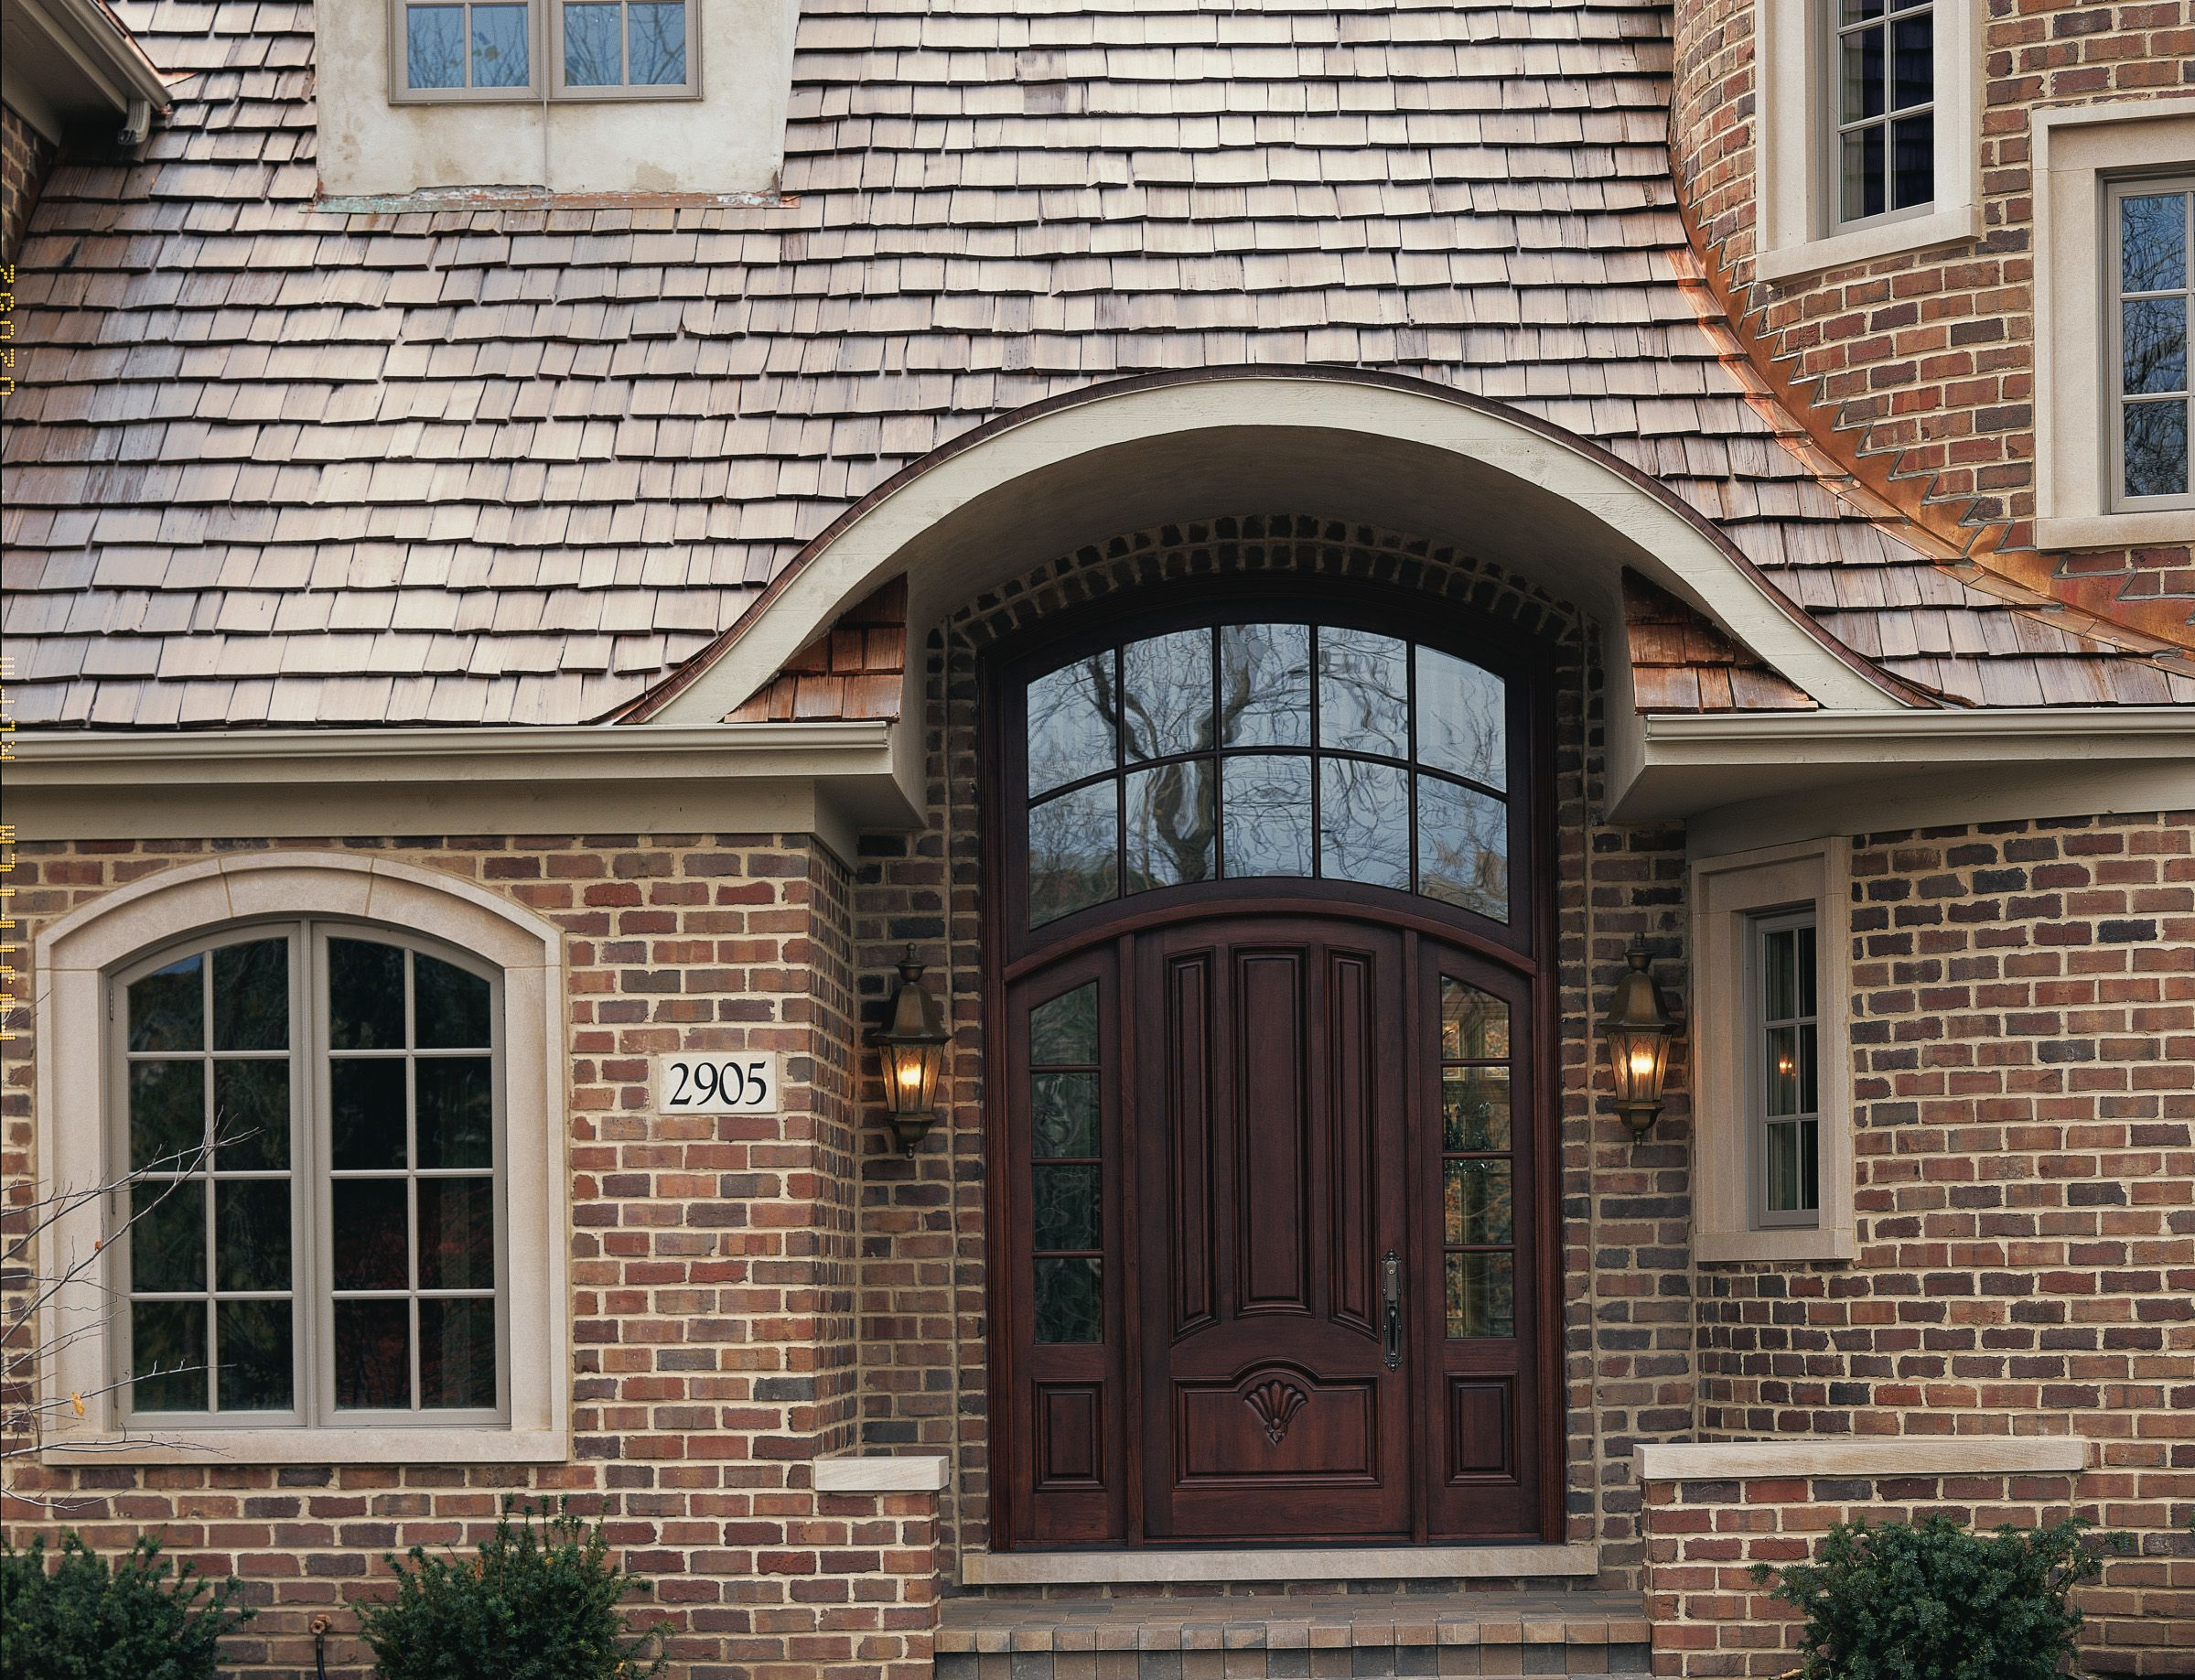 Custom Wood Mahogany Arched Entry Door Unit With Sidelights U0026 Transom    Style # 465 With Merlot Stain Finish. *We Have This Door With A Flat Top On  Display ...